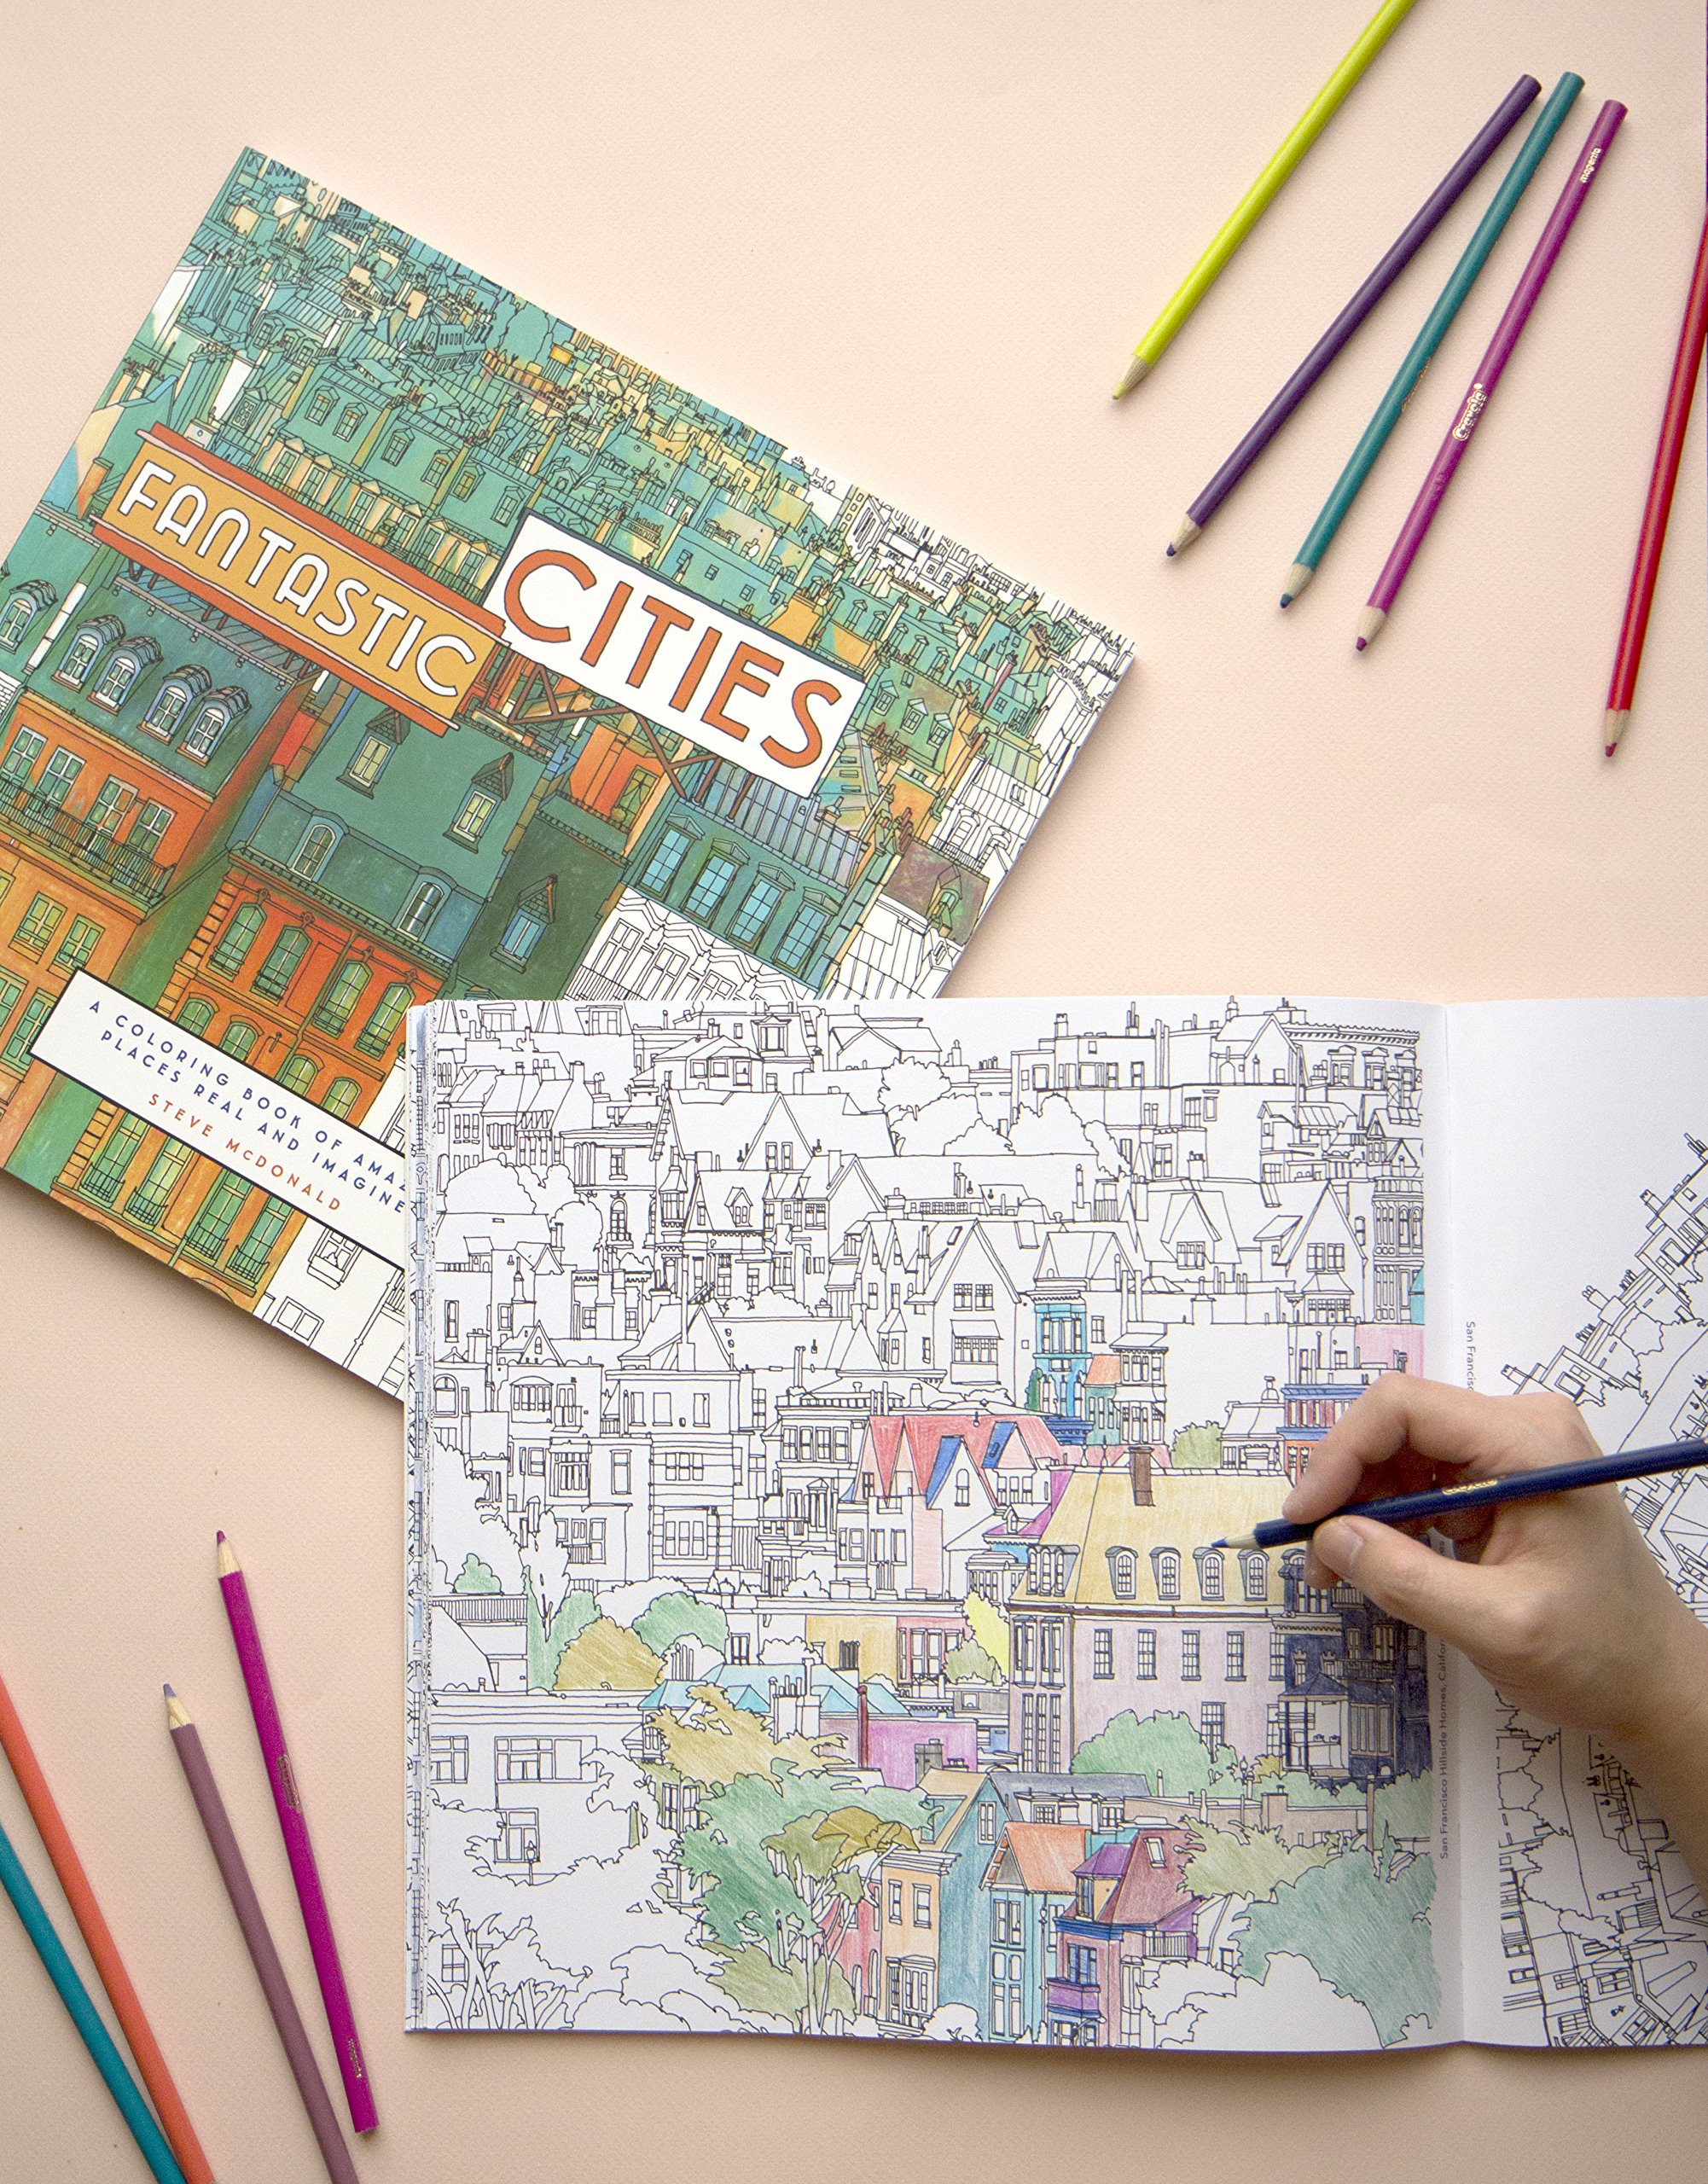 Fantastic Cities A Coloring Book Of Amazing Places Real And Imagined Amazoncouk Steve McDonald Alyssa Nassner Books